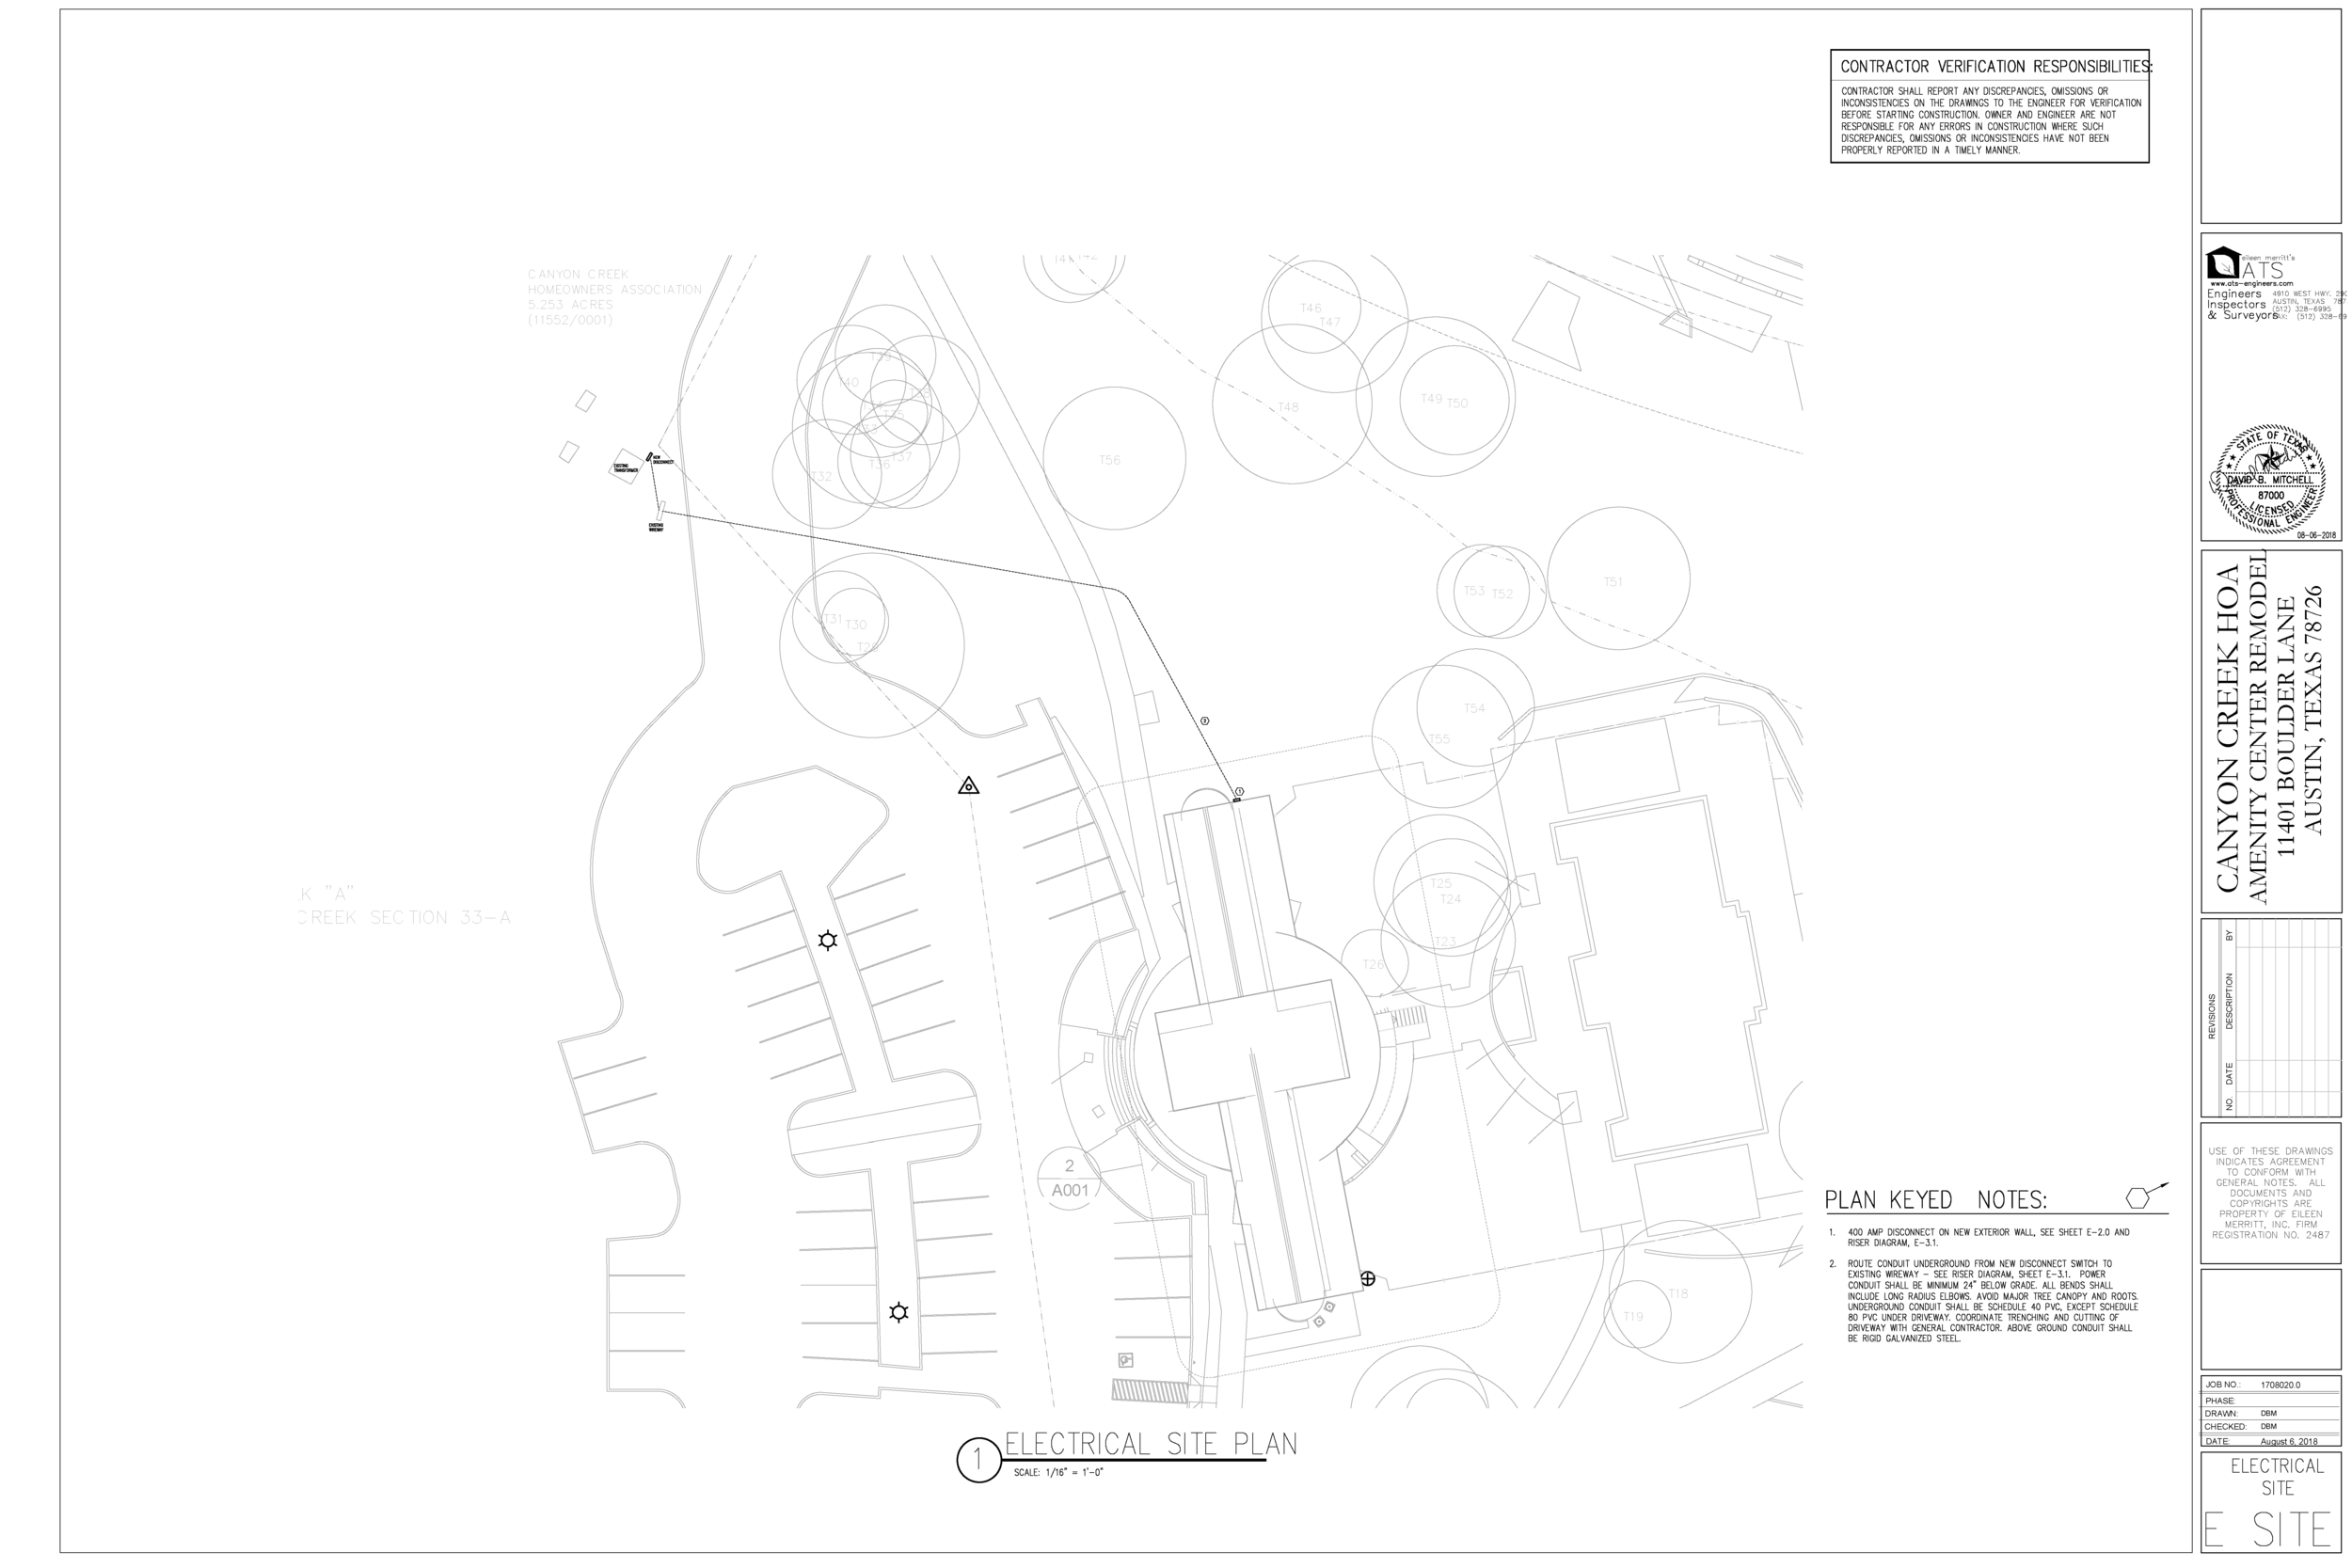 2018-08-06 (Draw 3) 11401 CANYON CREEK - MEP - V.2 PERMIT_Page_09.png